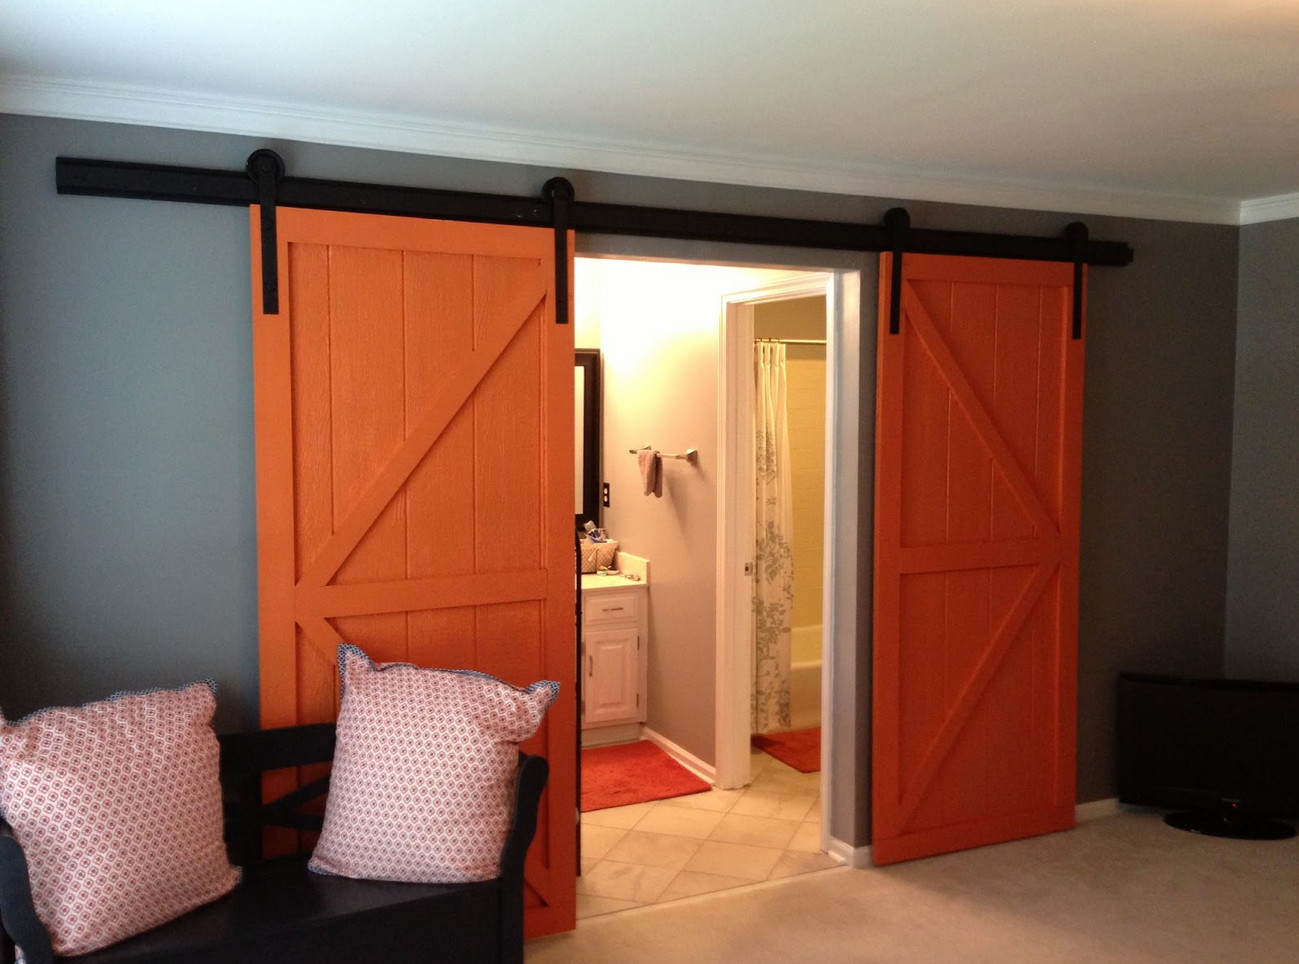 Barn sliding interior doors interesting ideas for home for Barn door interior doors